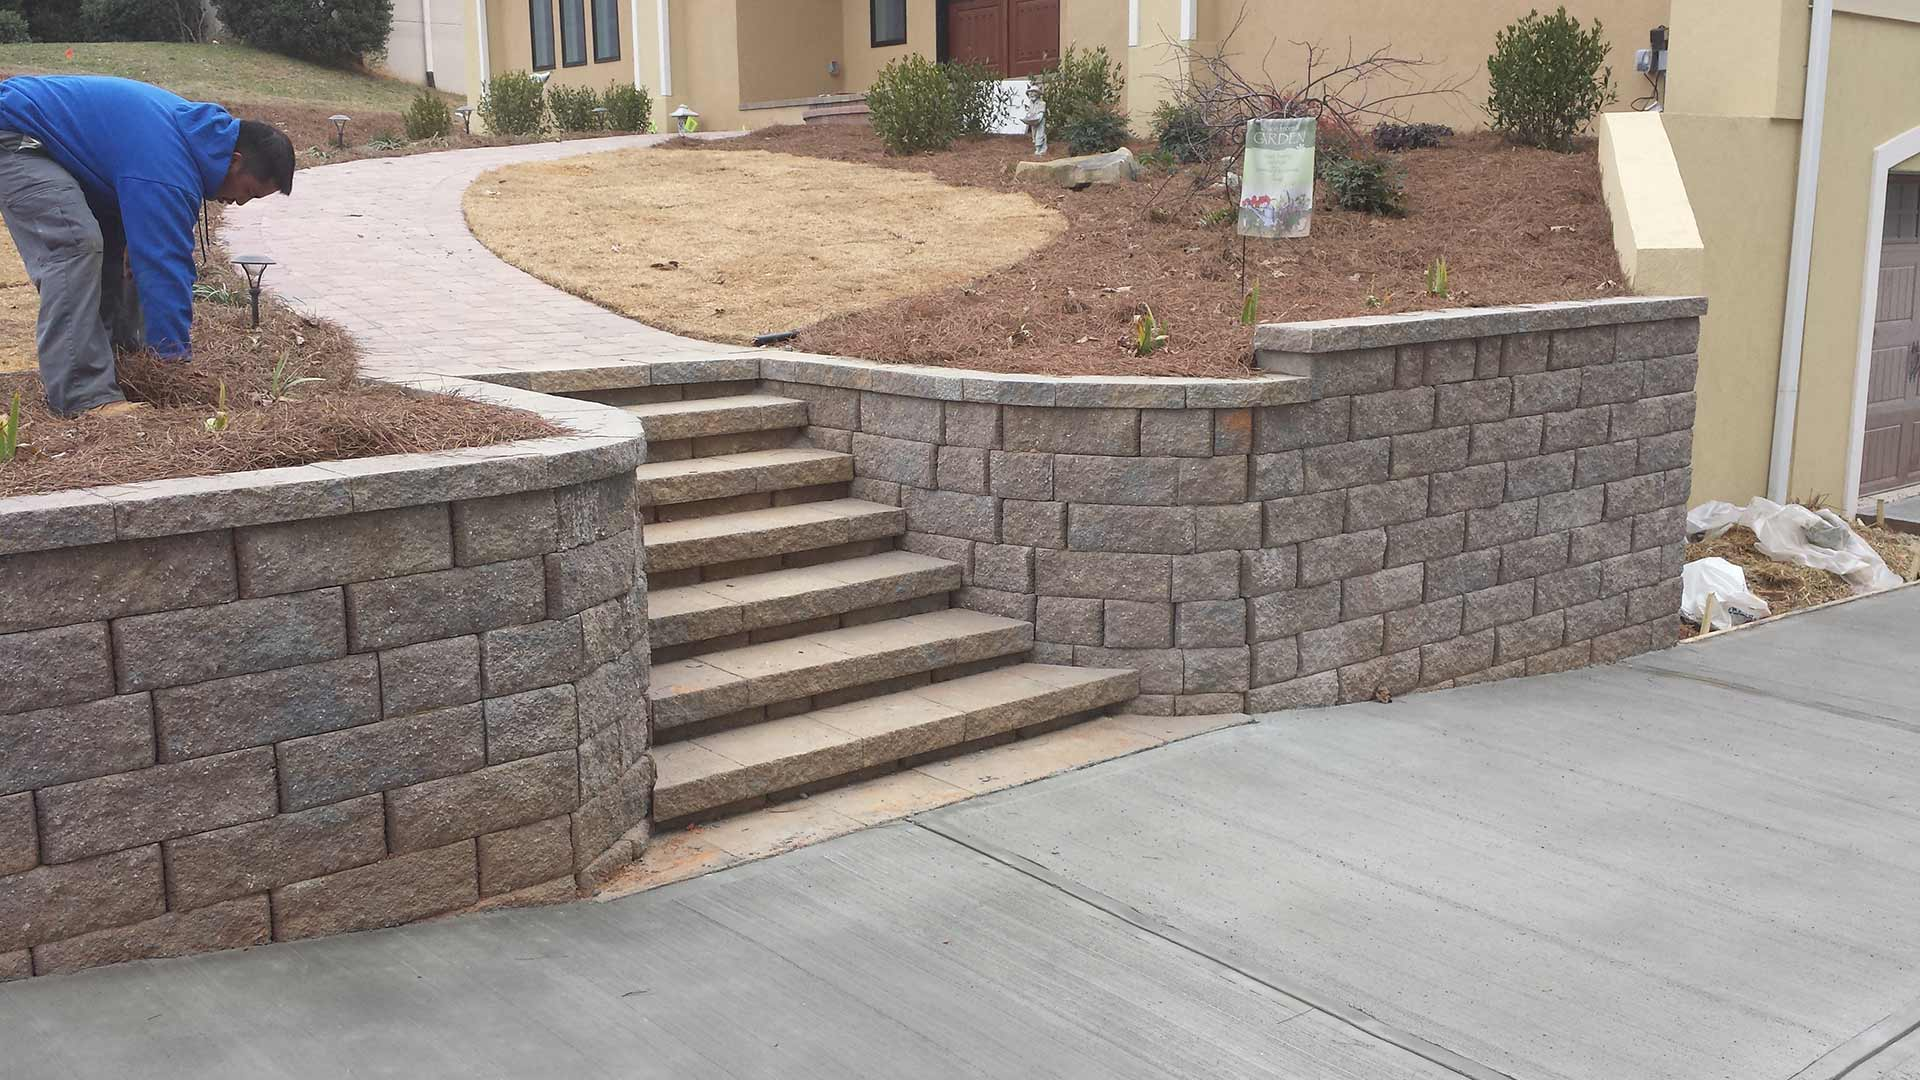 3 Types of Retaining Walls For Your Landscape